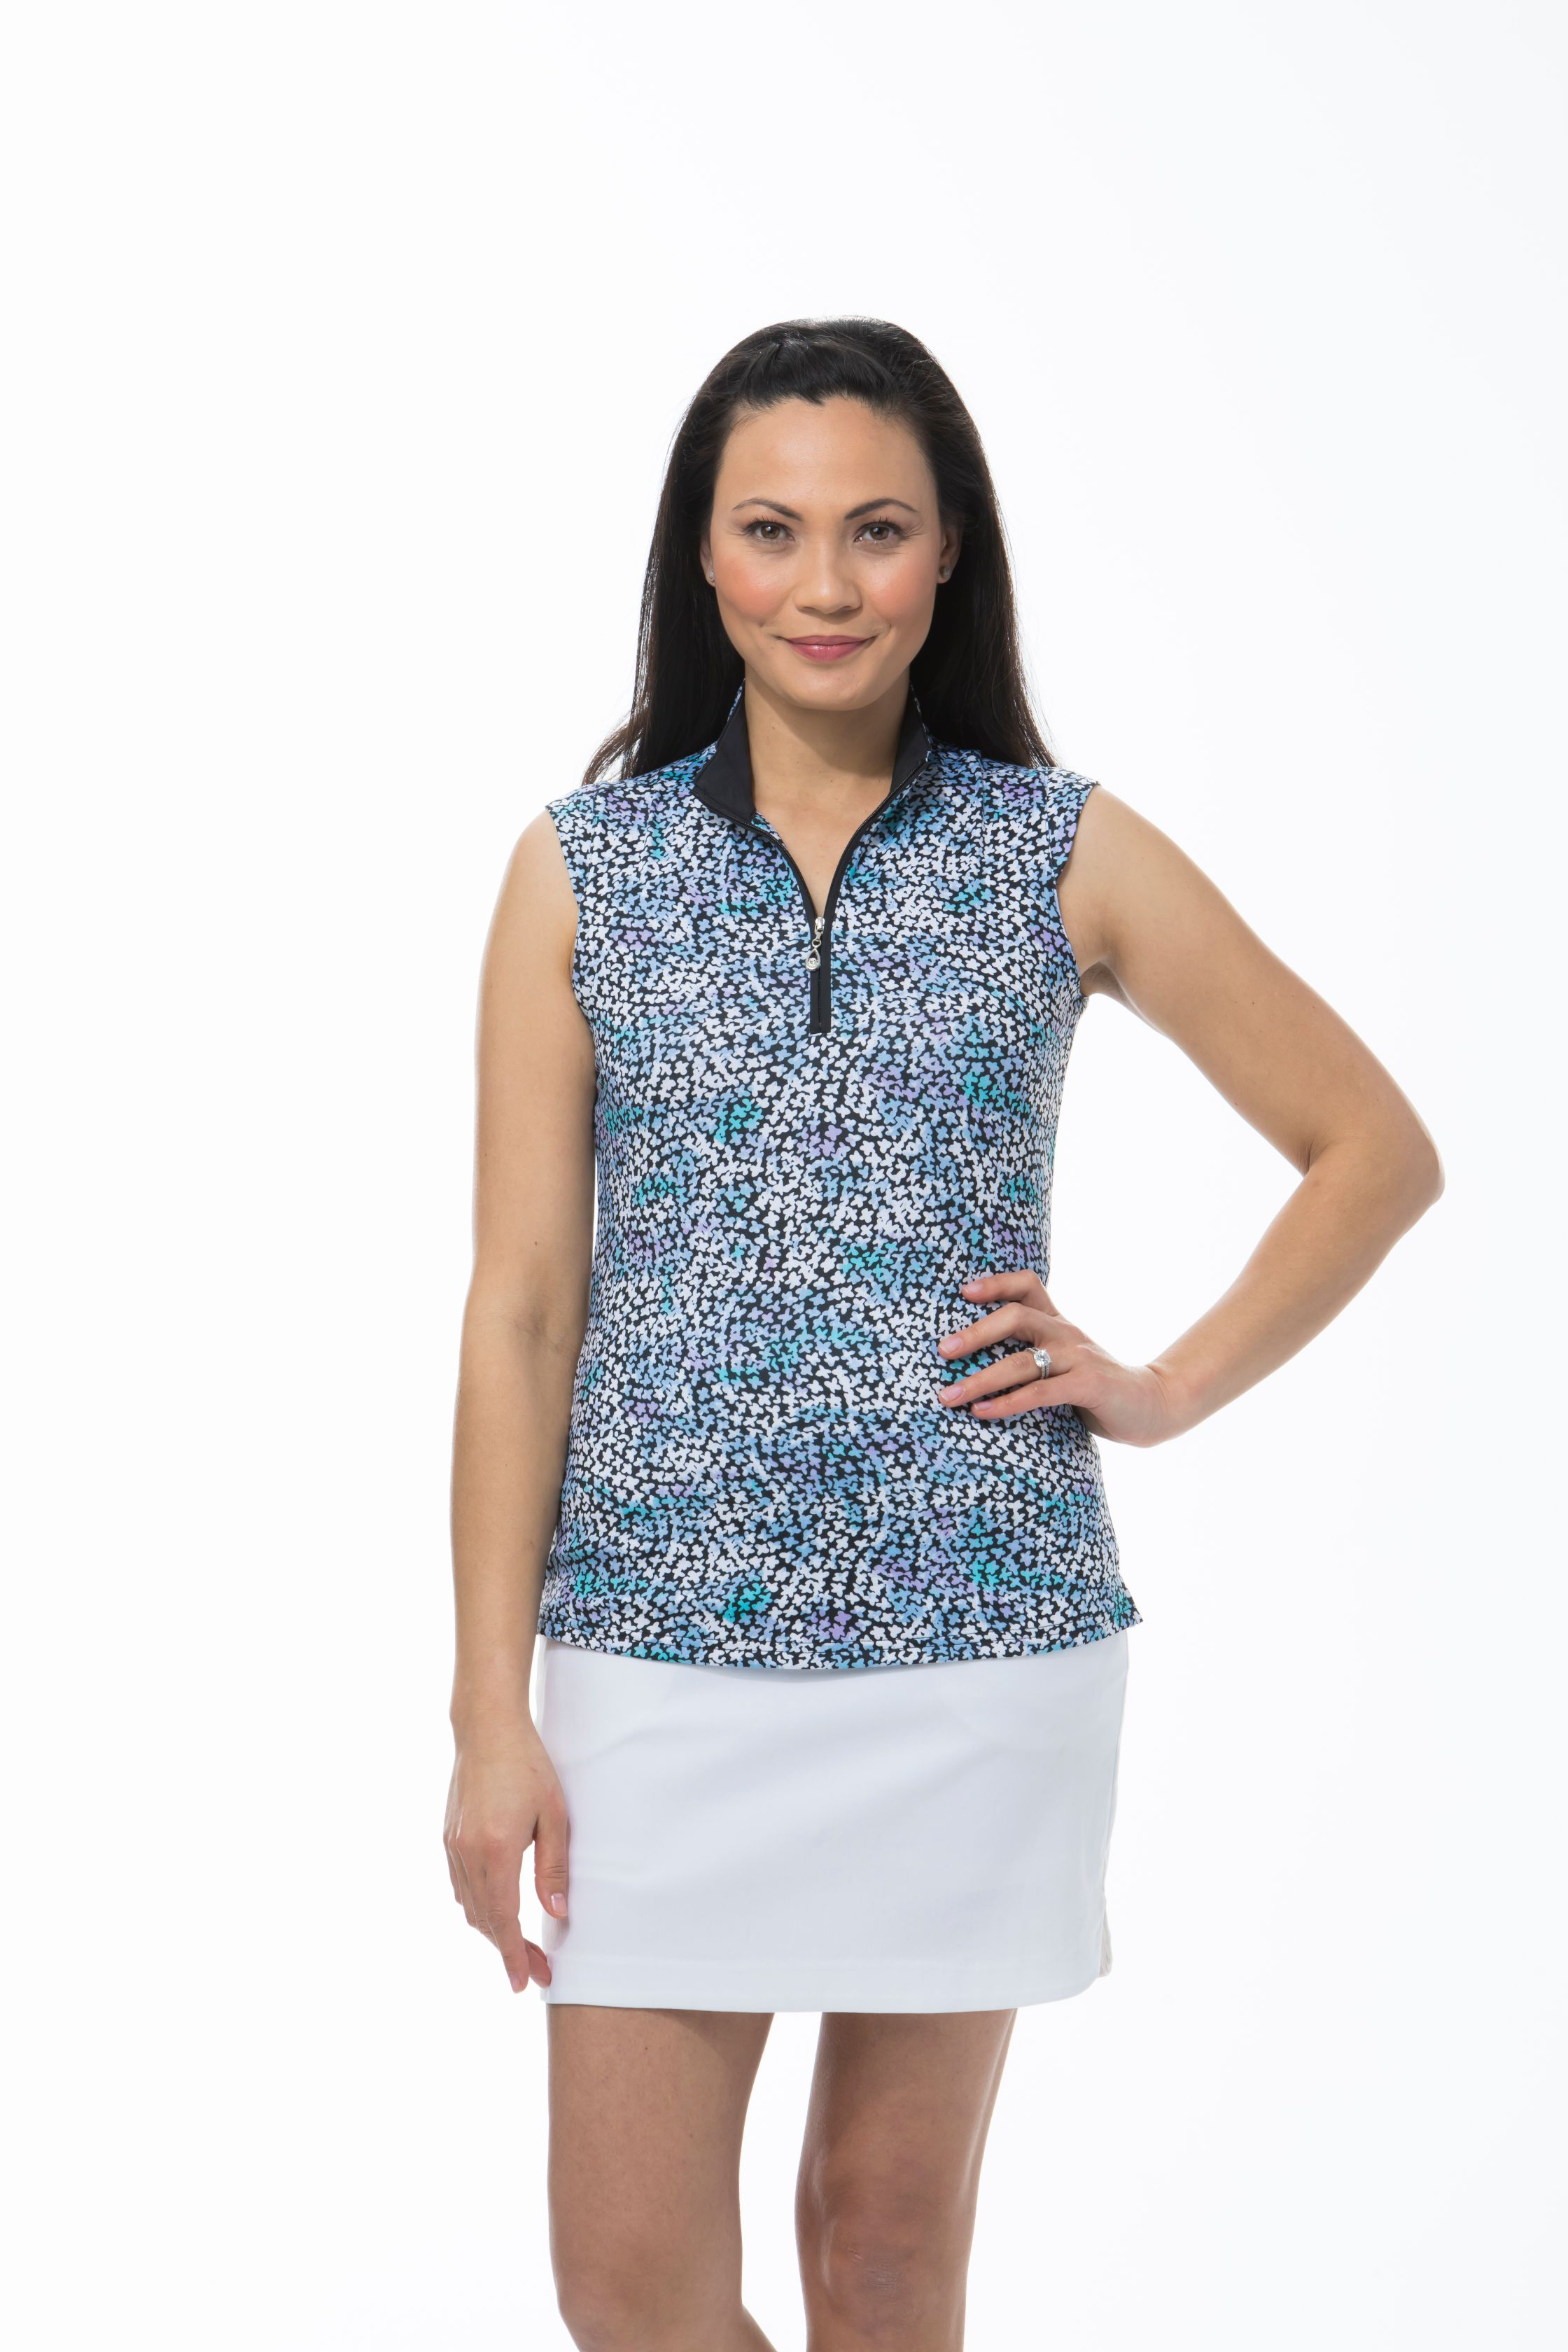 SANSOLEIL SOLCOOL SLEEVELESS MOCK. FORGET ME NOT. BLUE. 900471